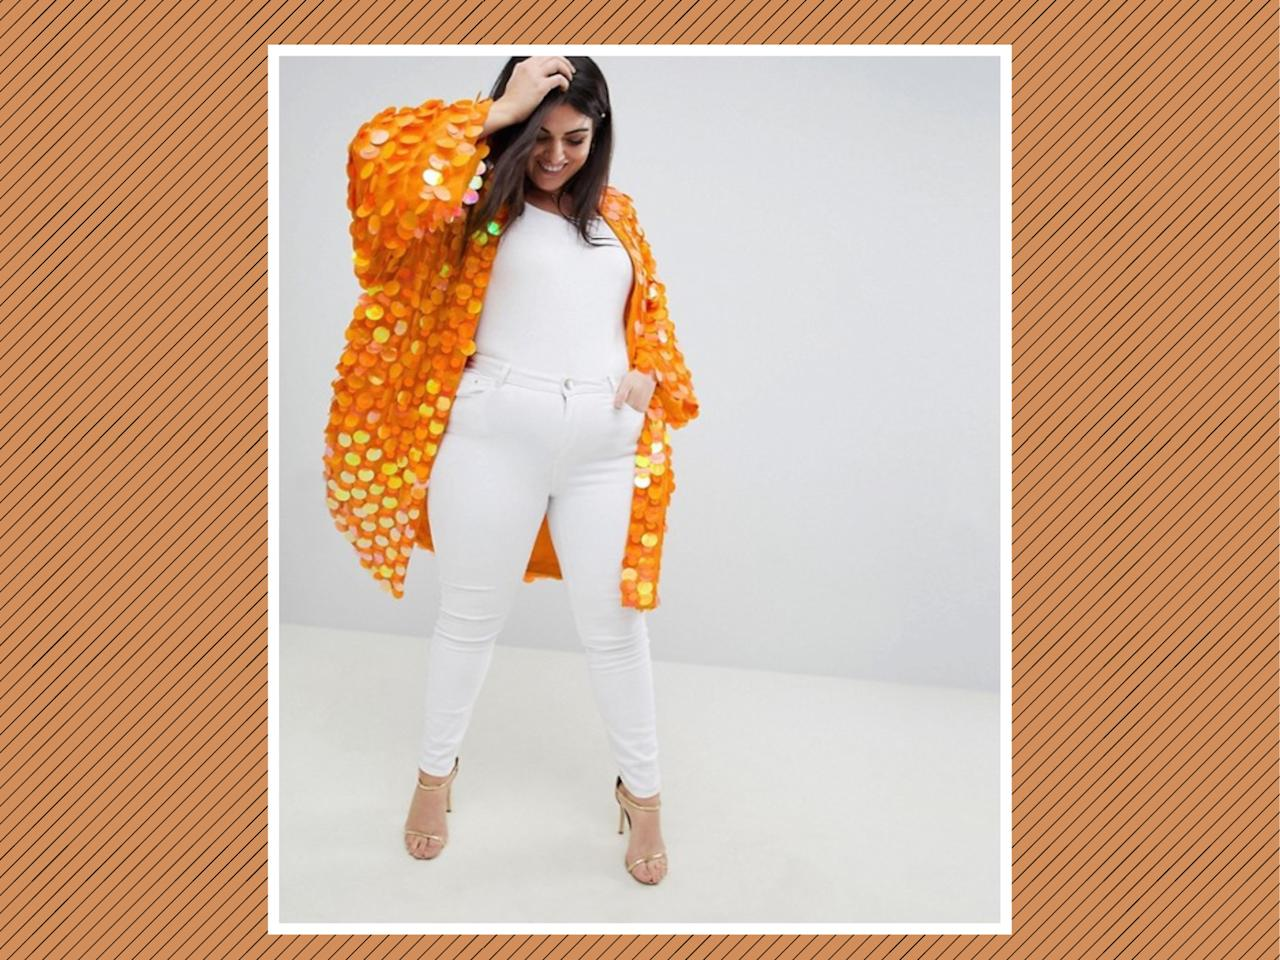 "<p>ASOS Design Curve Bright Sequin Kimono, $119, <a rel=""nofollow"" href=""http://us.asos.com/asos-curve/asos-design-curve-bright-sequin-kimono/prd/9120837?clr=orange&SearchQuery=&cid=9578&gridcolumn=1&gridrow=3&gridsize=4&pge=1&pgesize=72&totalstyles=12"">ASOS</a> (Photo: ASOS) </p>"